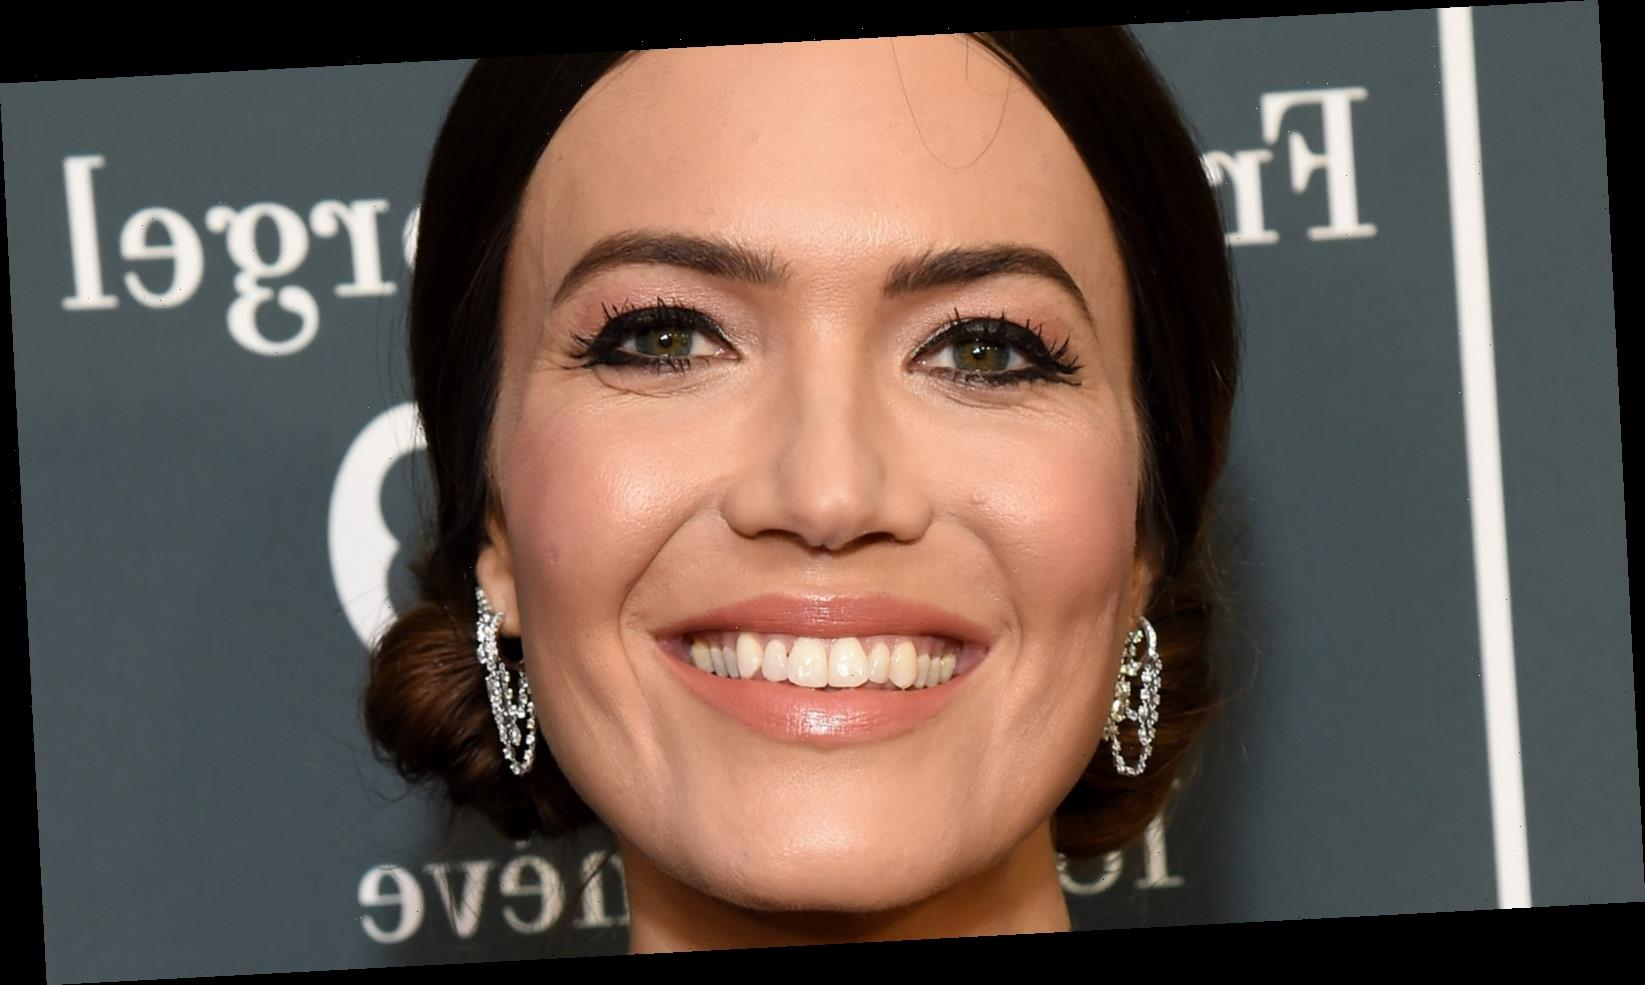 Mandy Moore Gives A Health Update Following Difficult Pregnancy